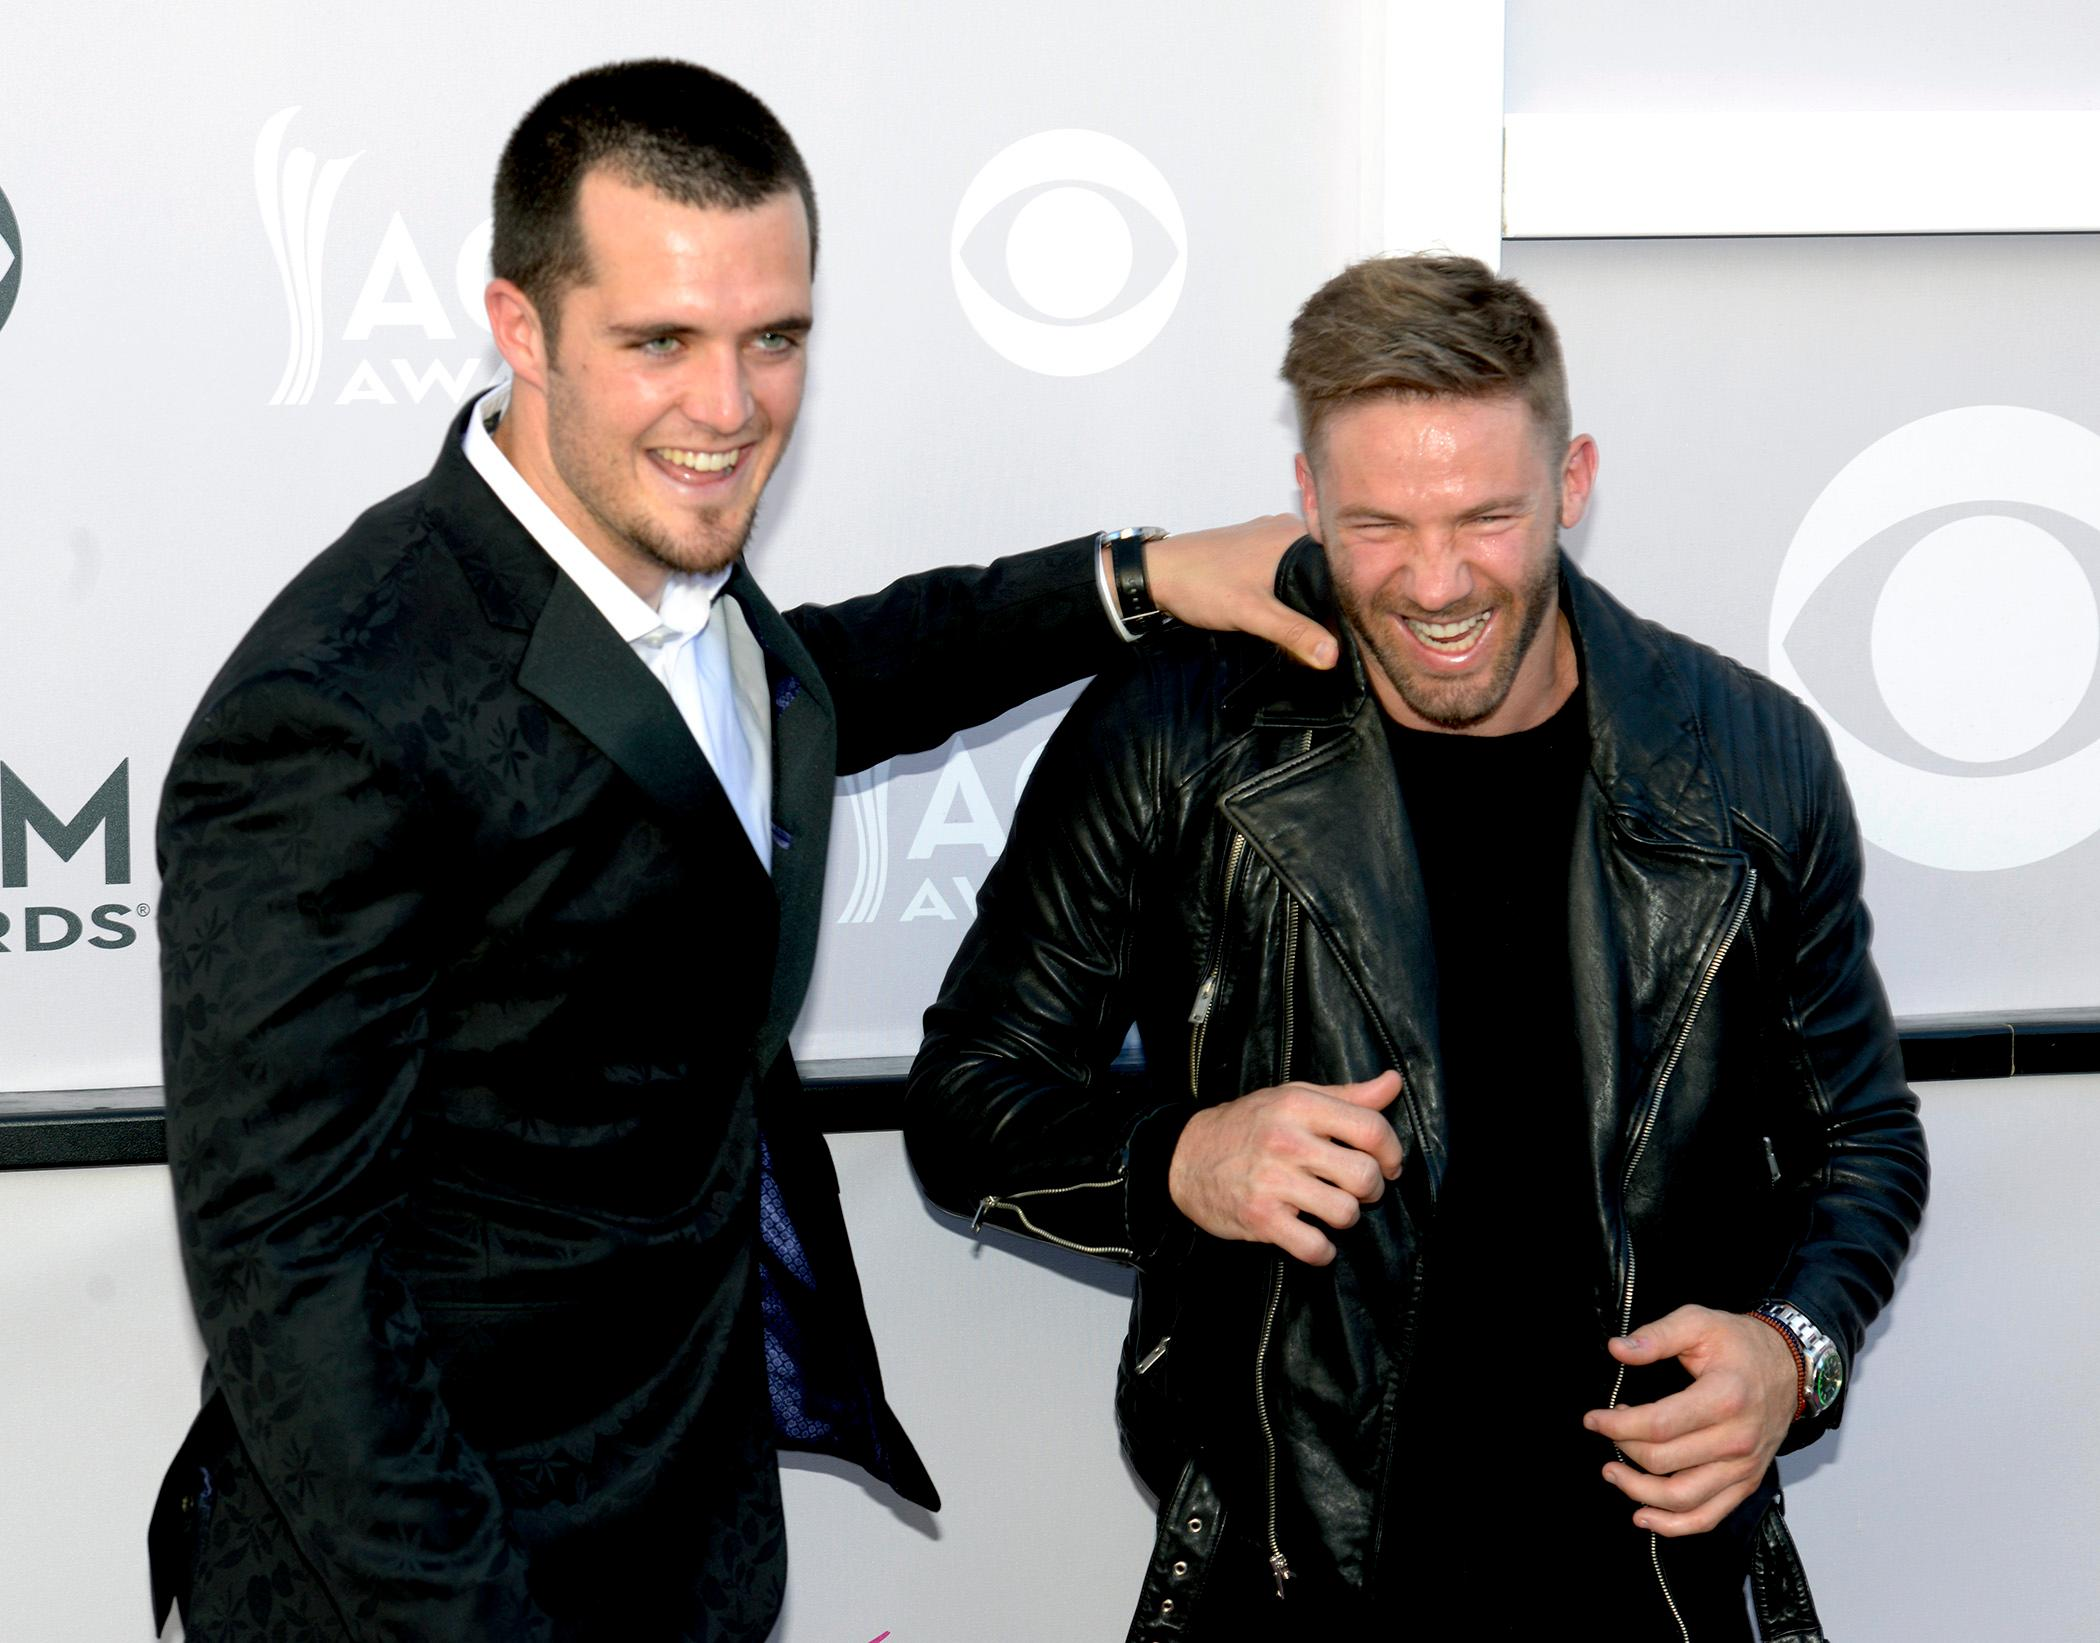 Derek Car, quarterback for the Oakland Raiders and Julian Edelman, wide receiver for the New England Patriots clown-around on the Academy of Country Music Awards red carpet at T-Mobile Arena. Sunday, April 2, 2017. (Glenn Pinkerton/ Las Vegas News Bureau)